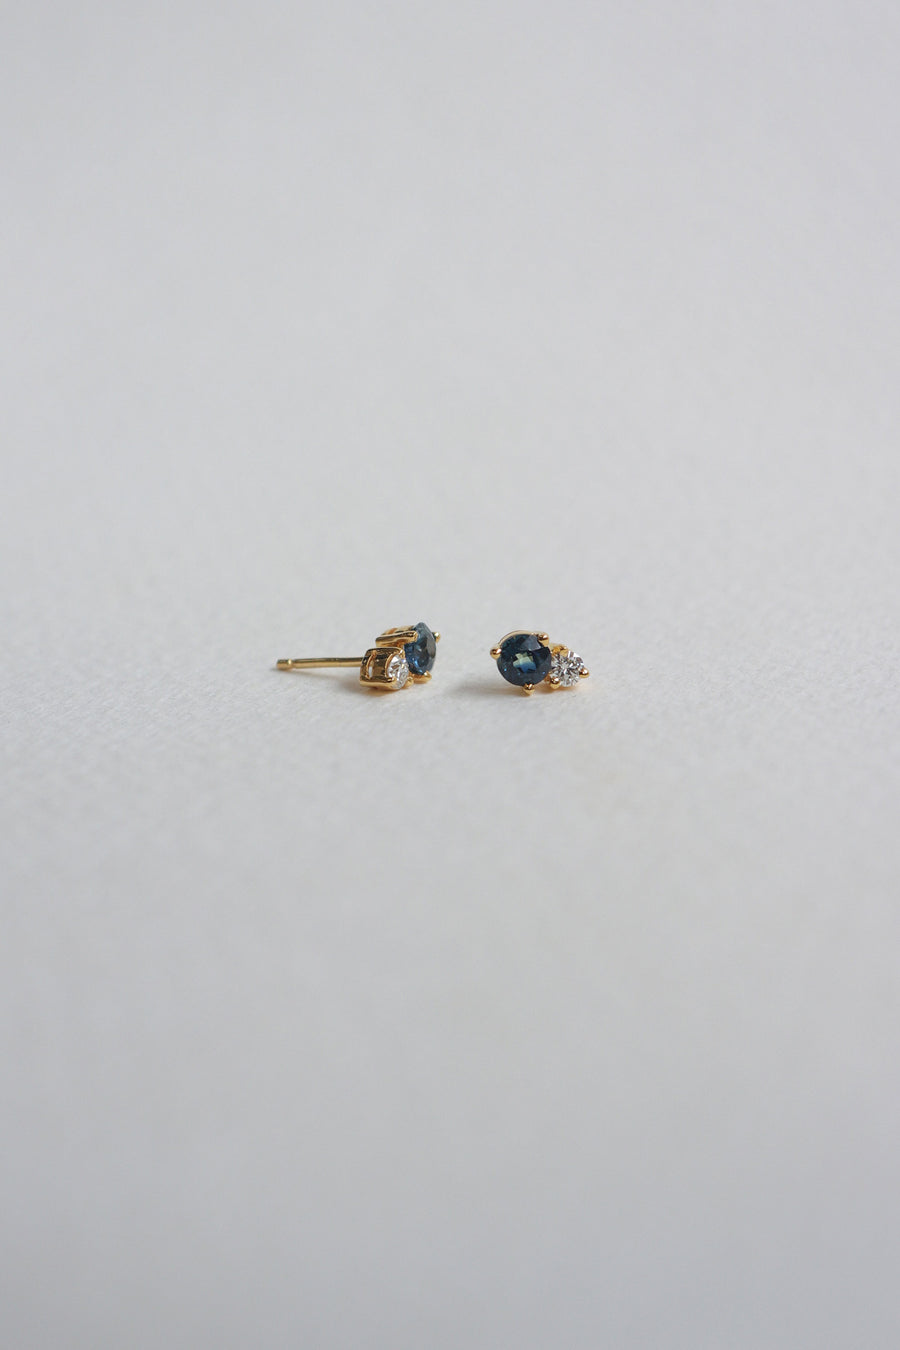 Duo Earstuds - Blue Parti Sapphire and Diamonds in 18k Gold